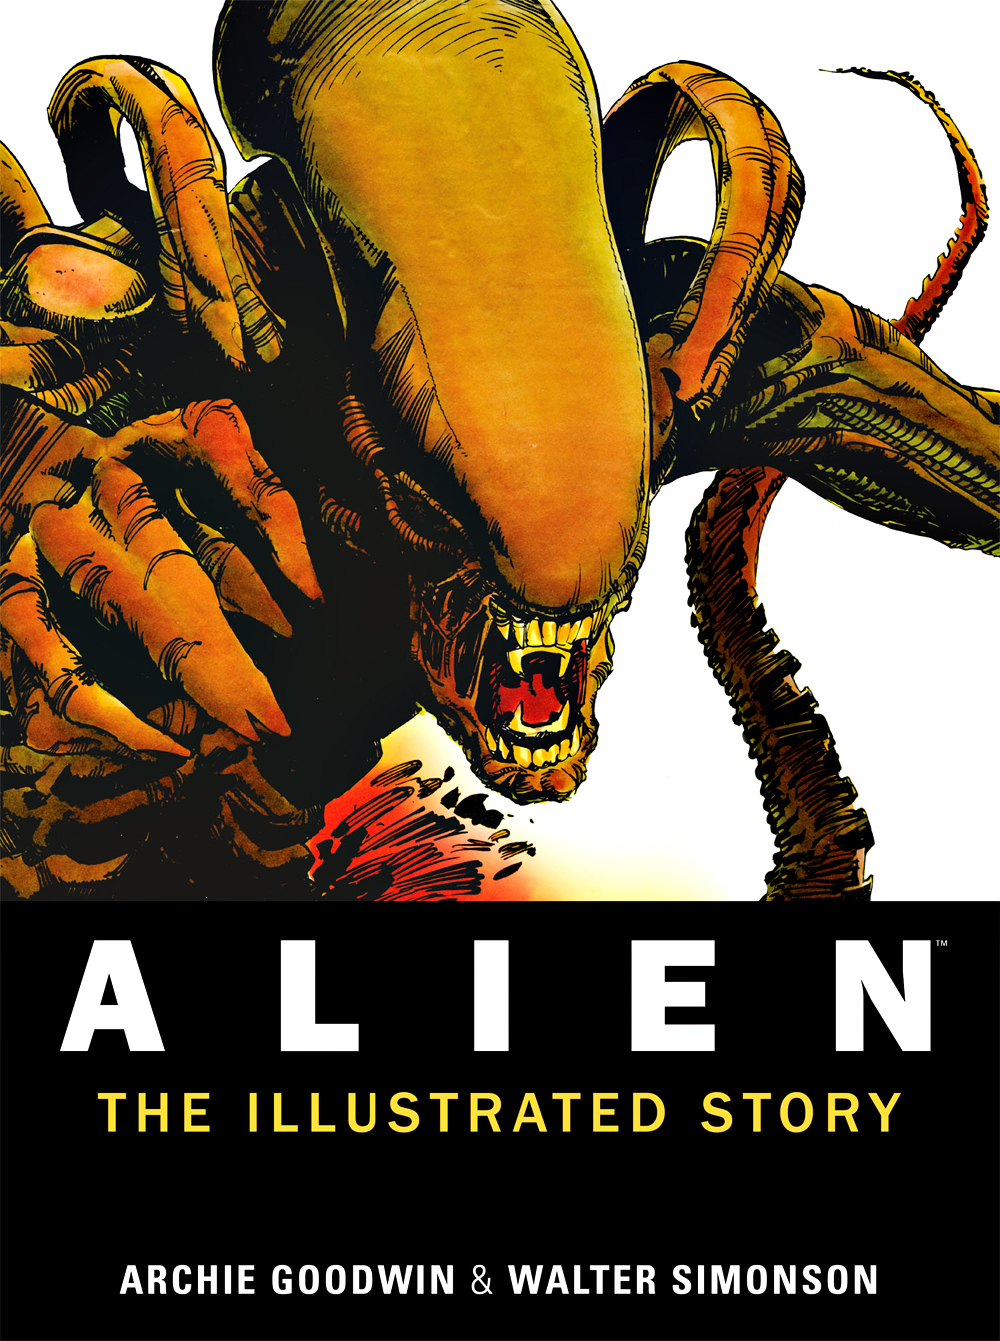 alien the illustrated story Alien: The Illustrated Story Review